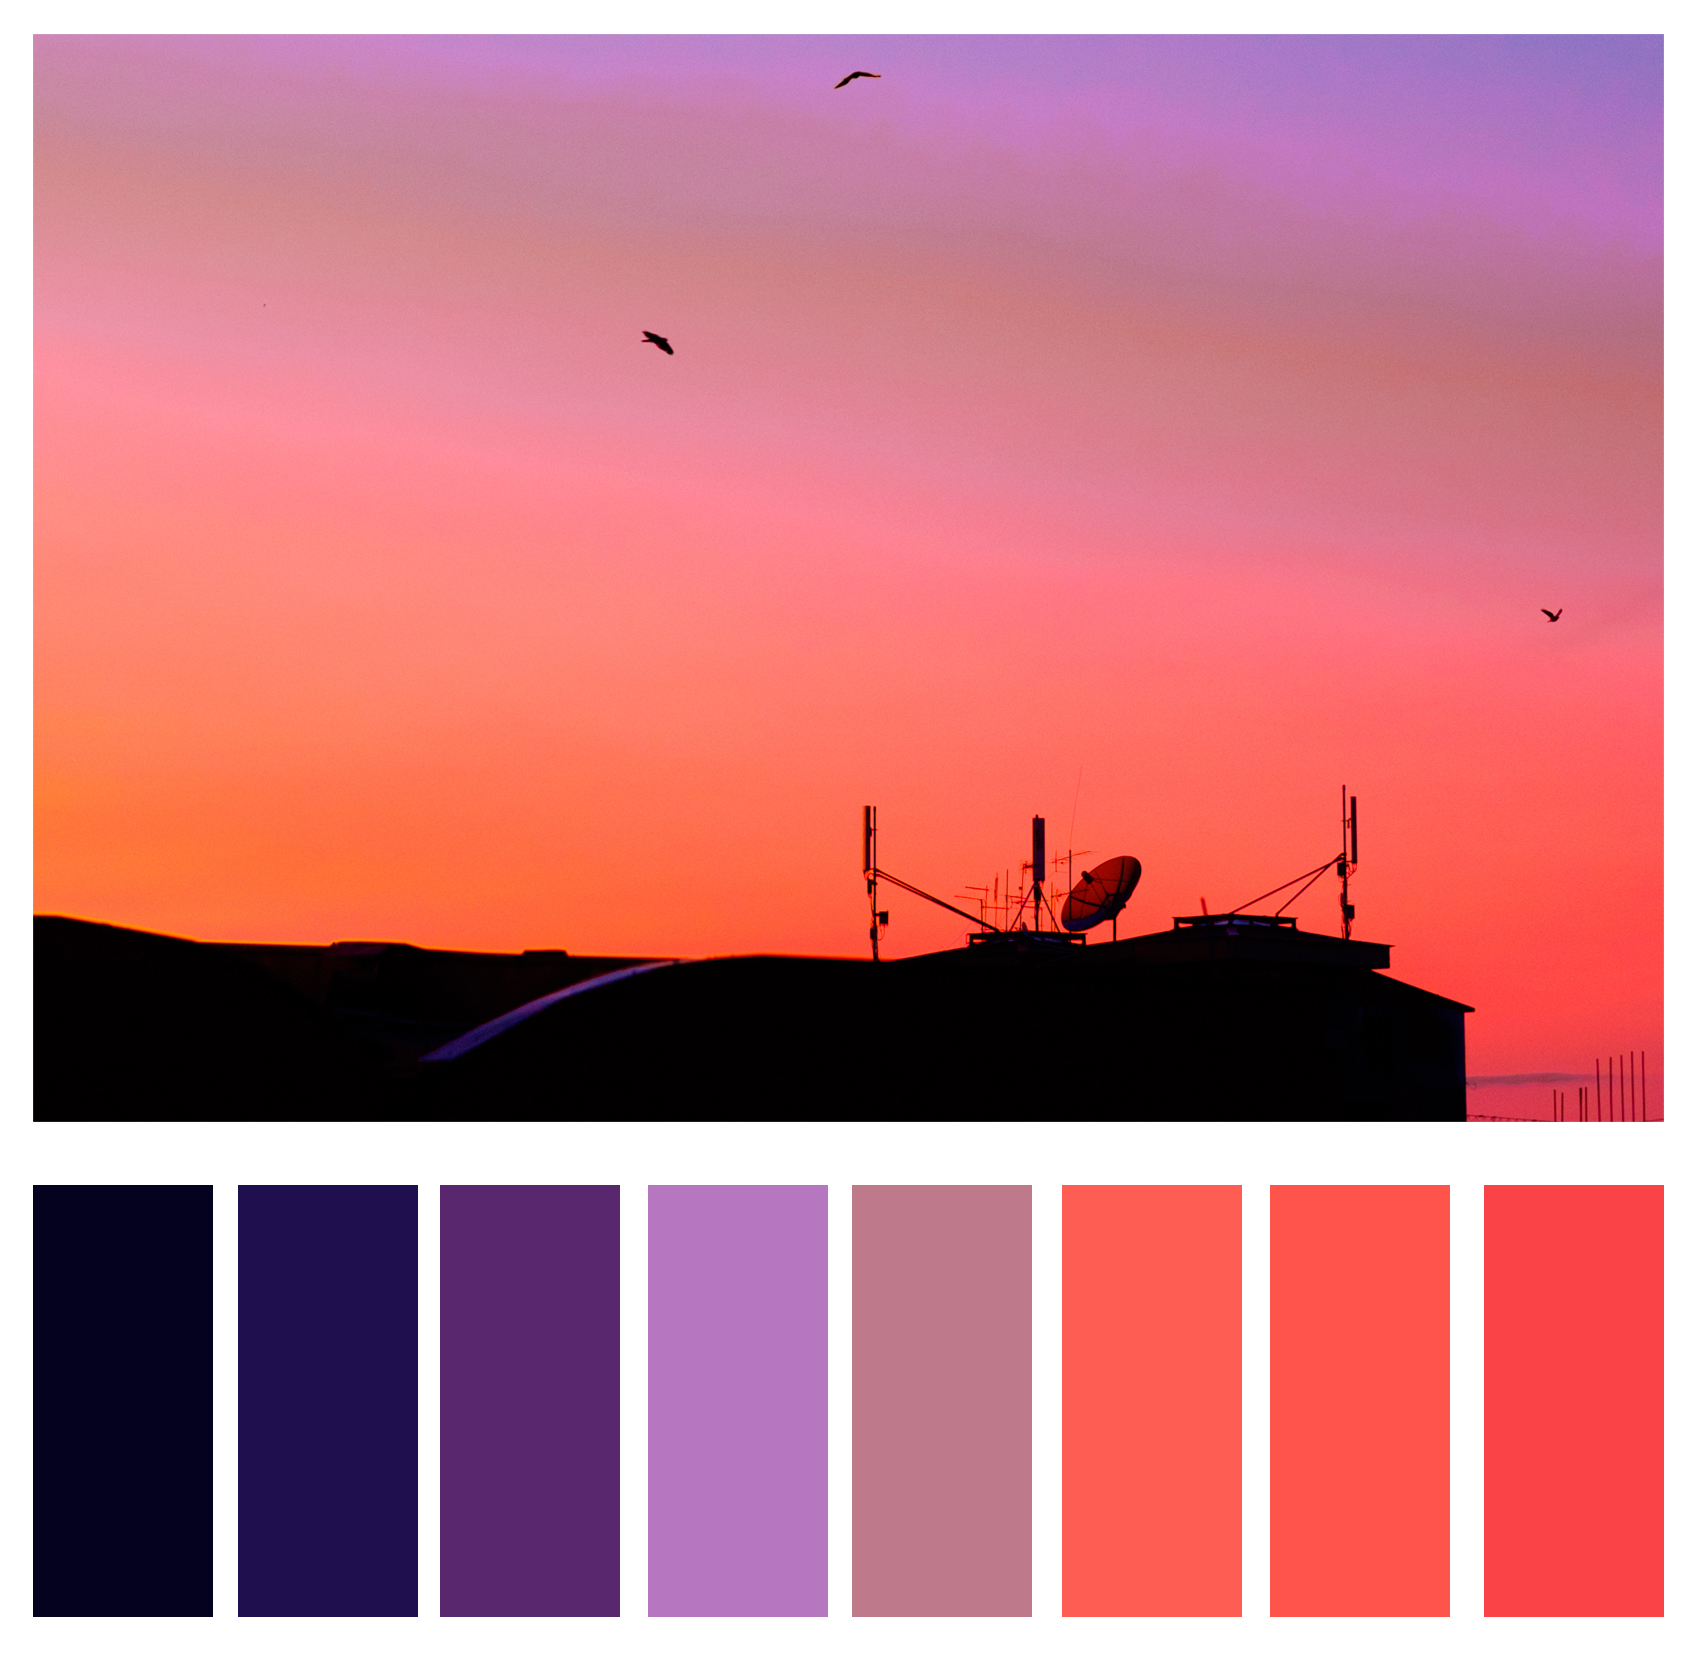 Figure 1c: Tertiary colors are often used to create visual interest and make for other-worldly vibes.